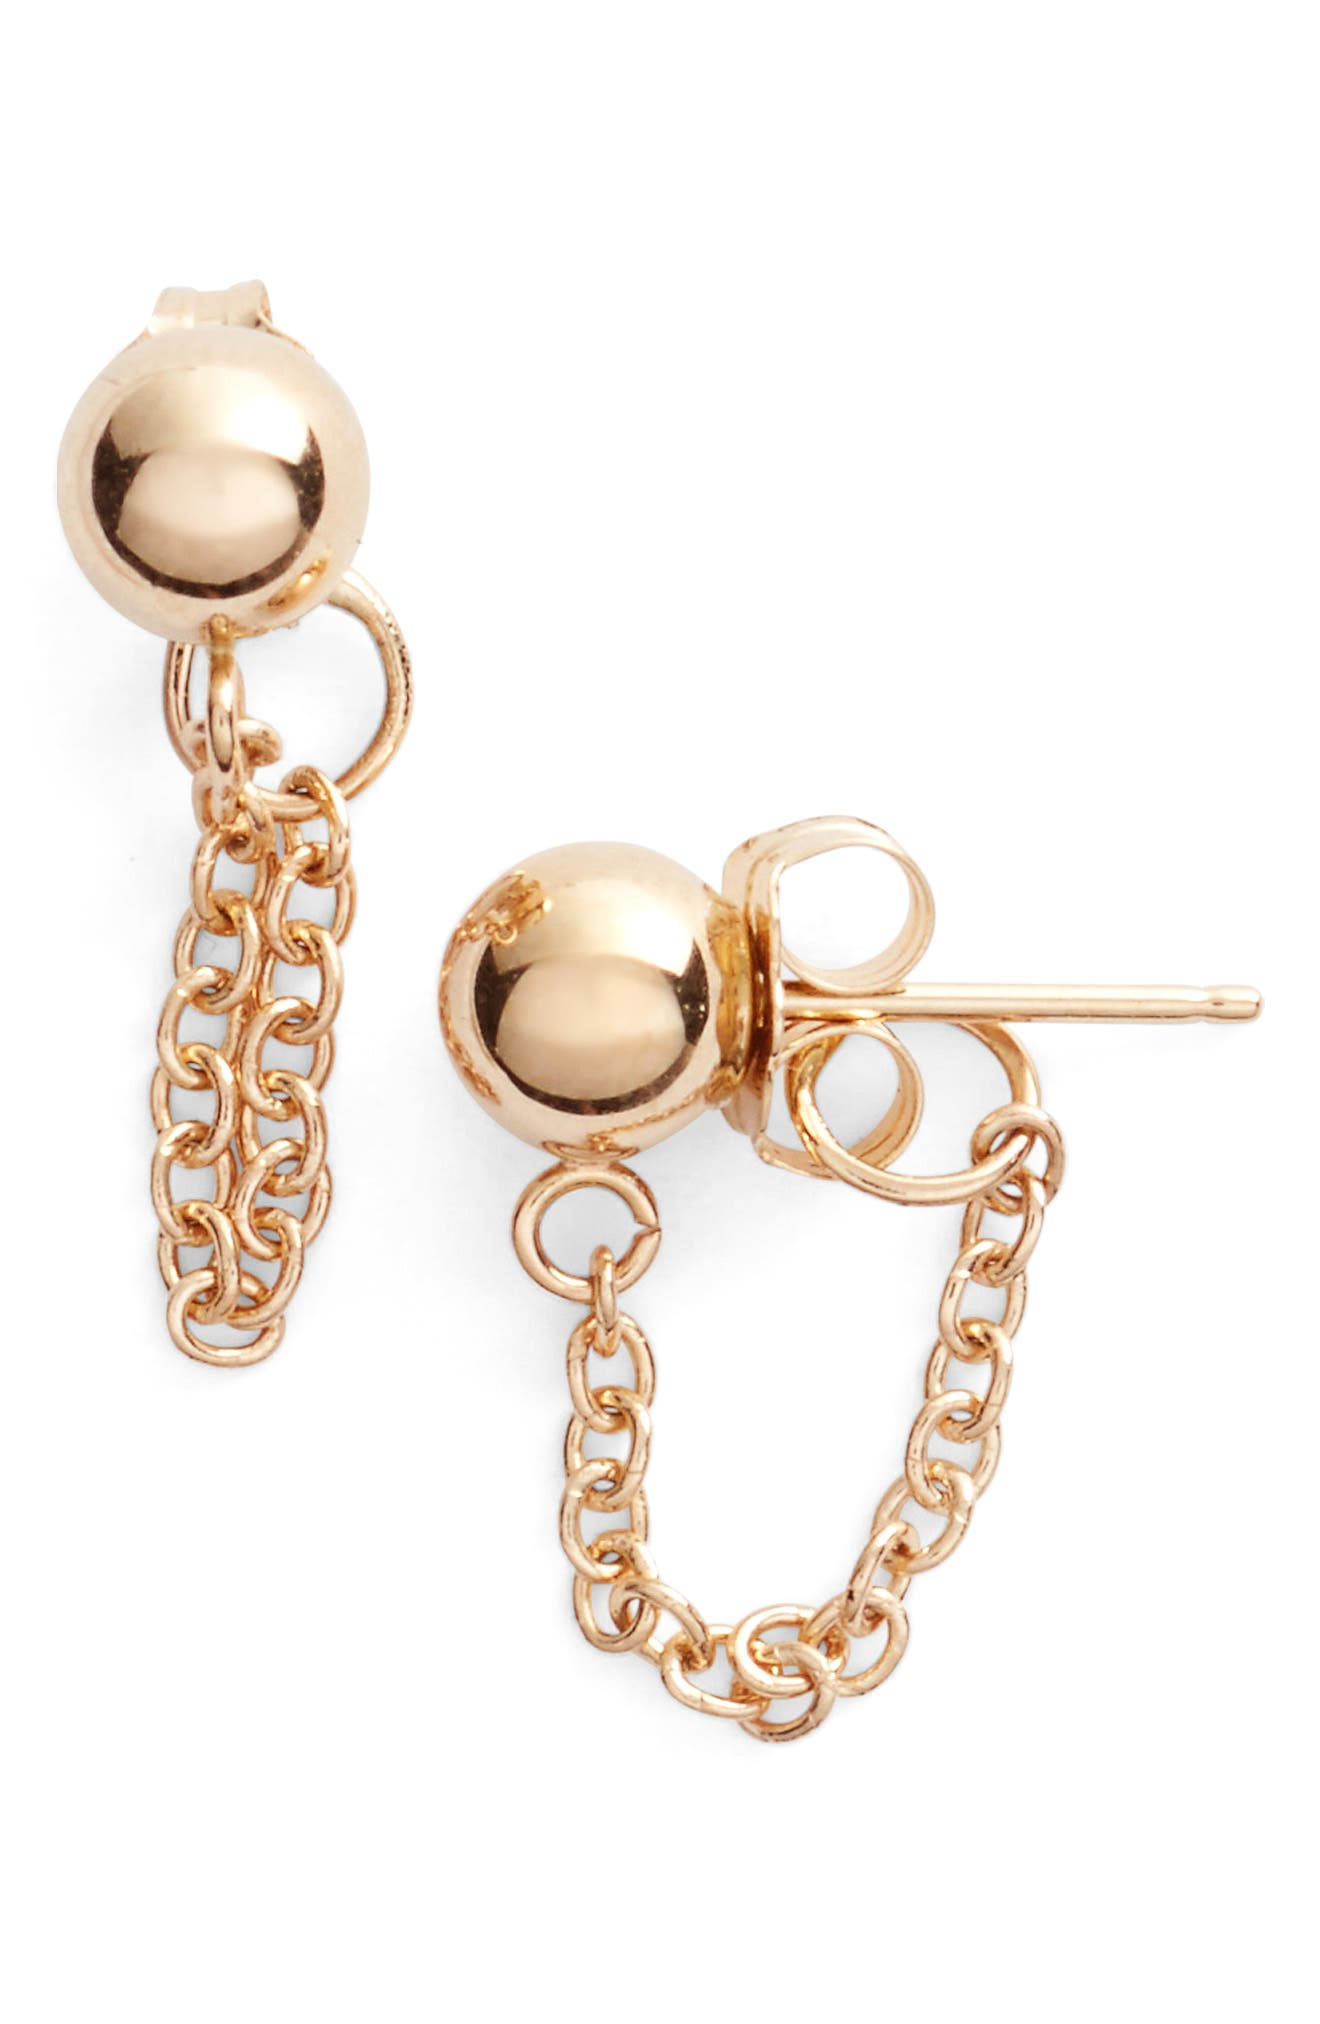 Gold Ball Chain Earrings,                             Main thumbnail 1, color,                             Yellow Gold/ White Pearl